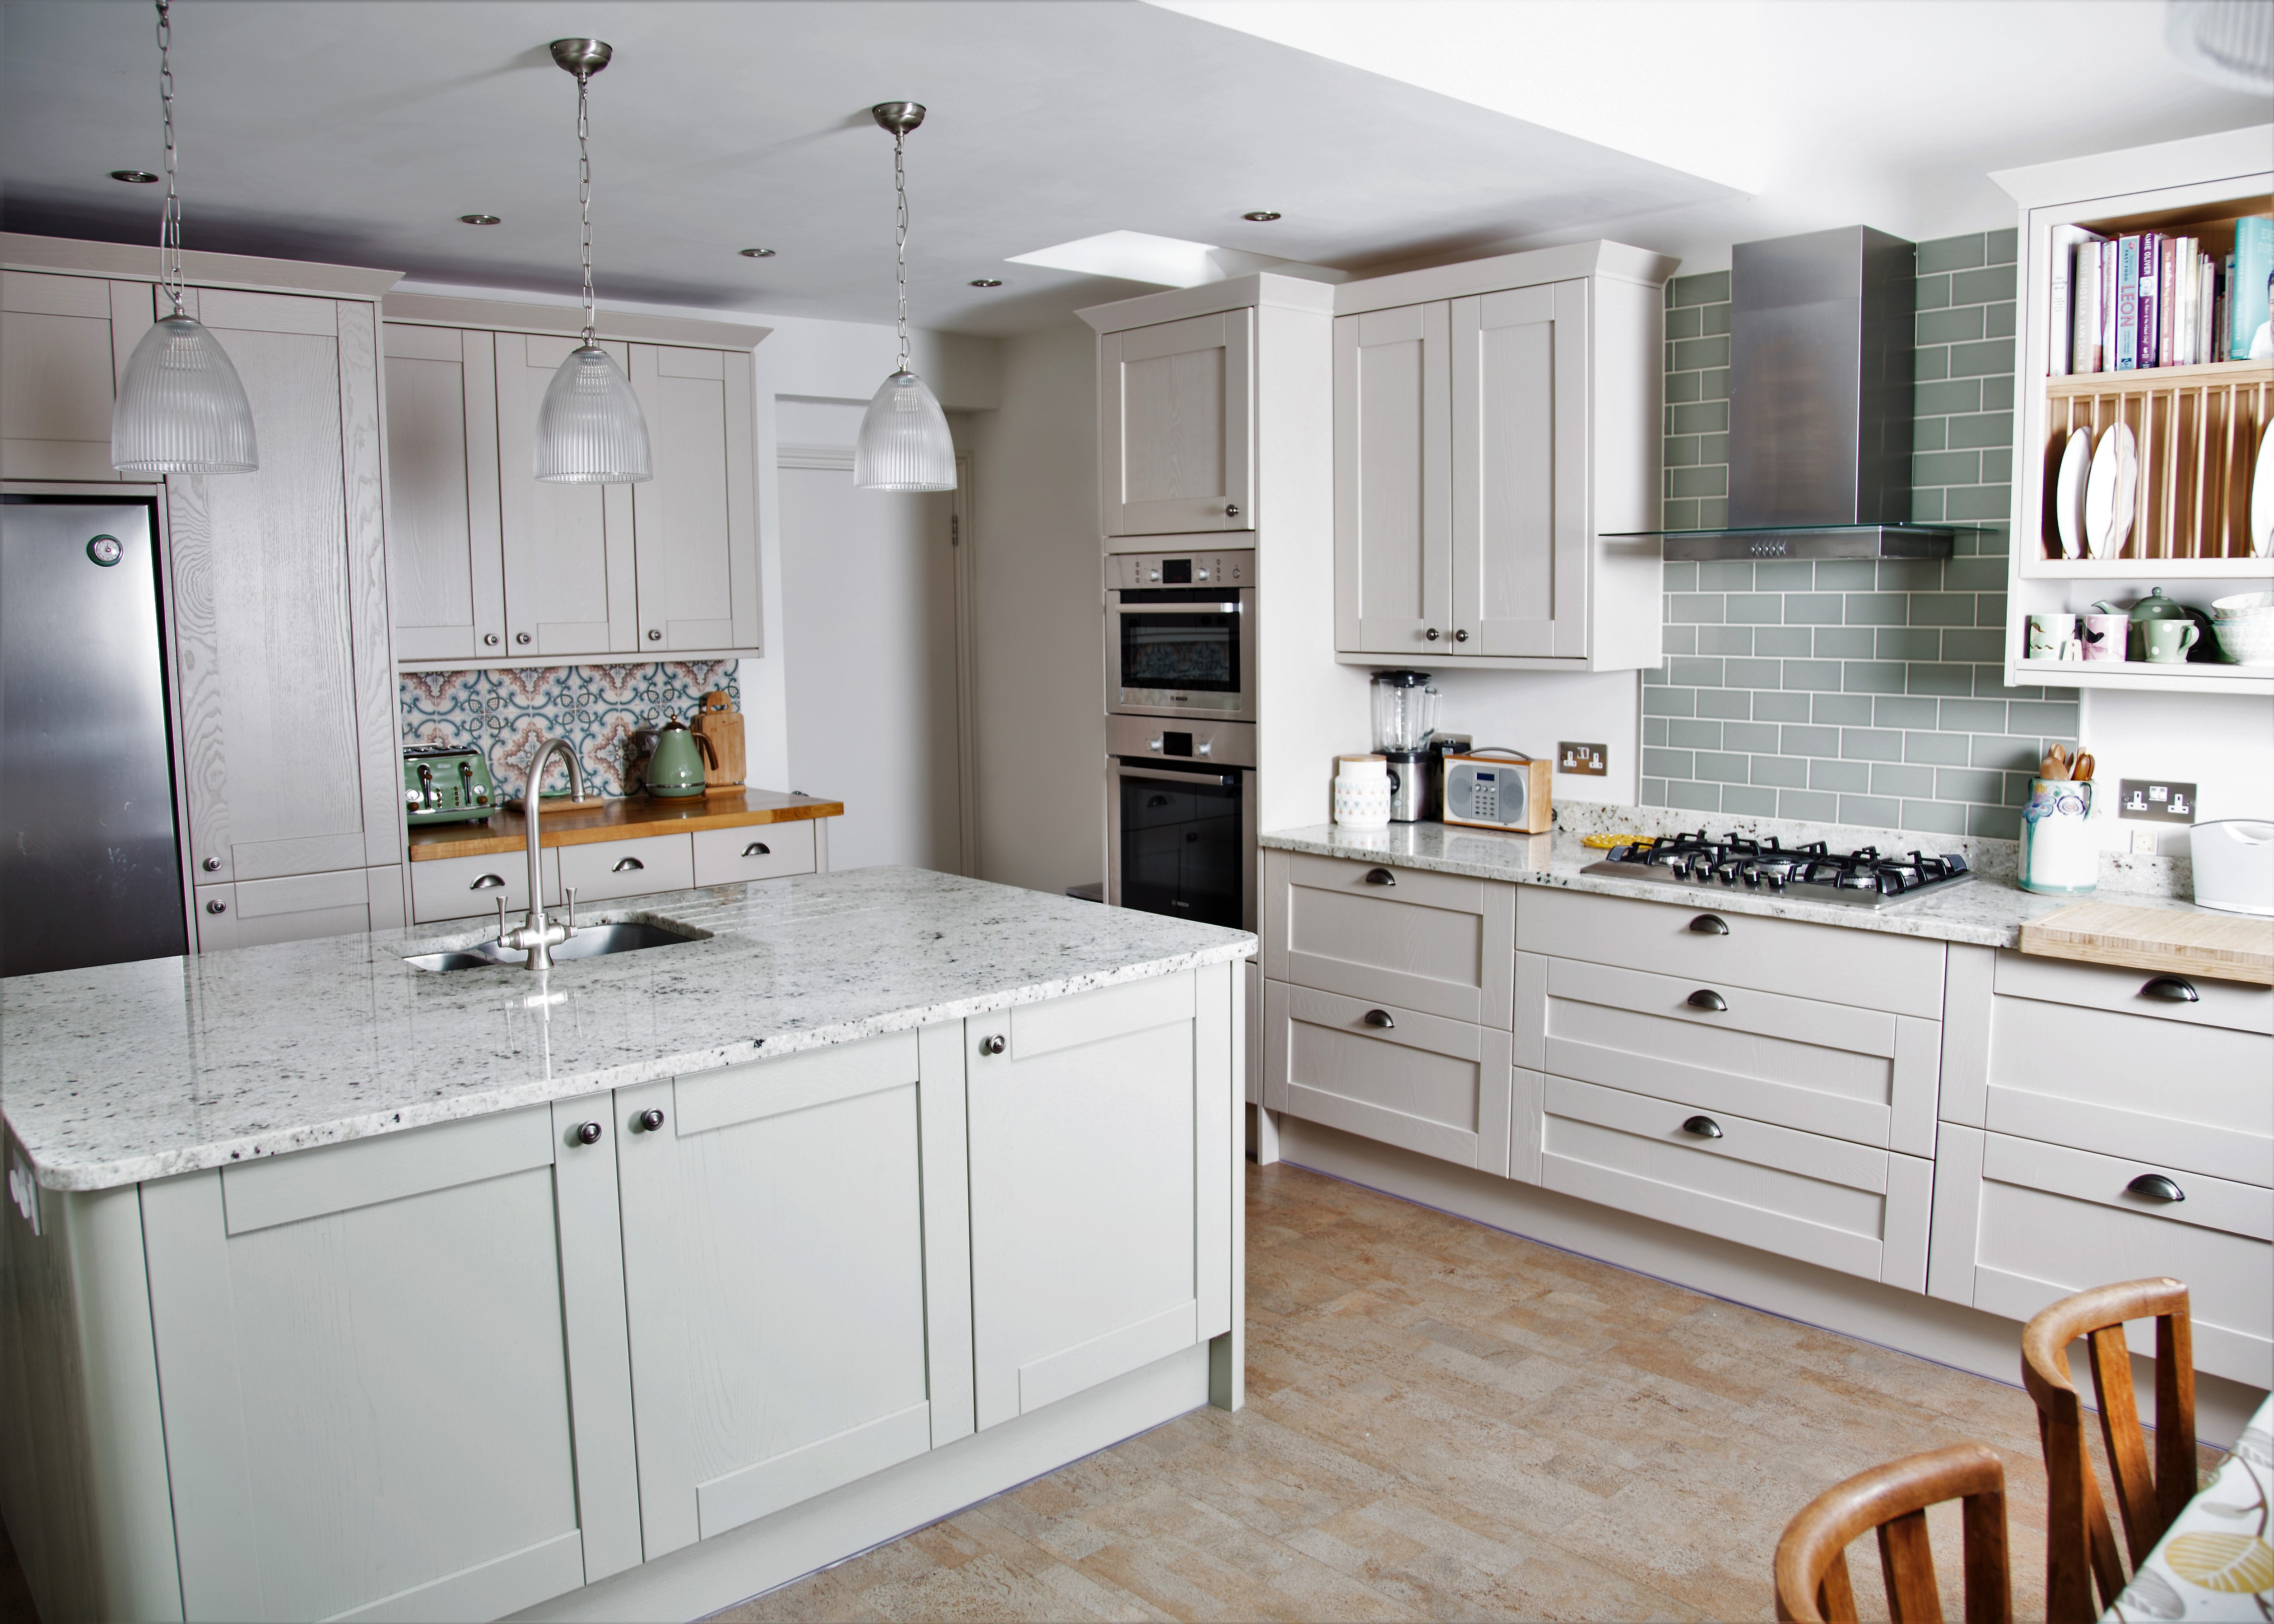 Using colour in kitchens - A + R Design